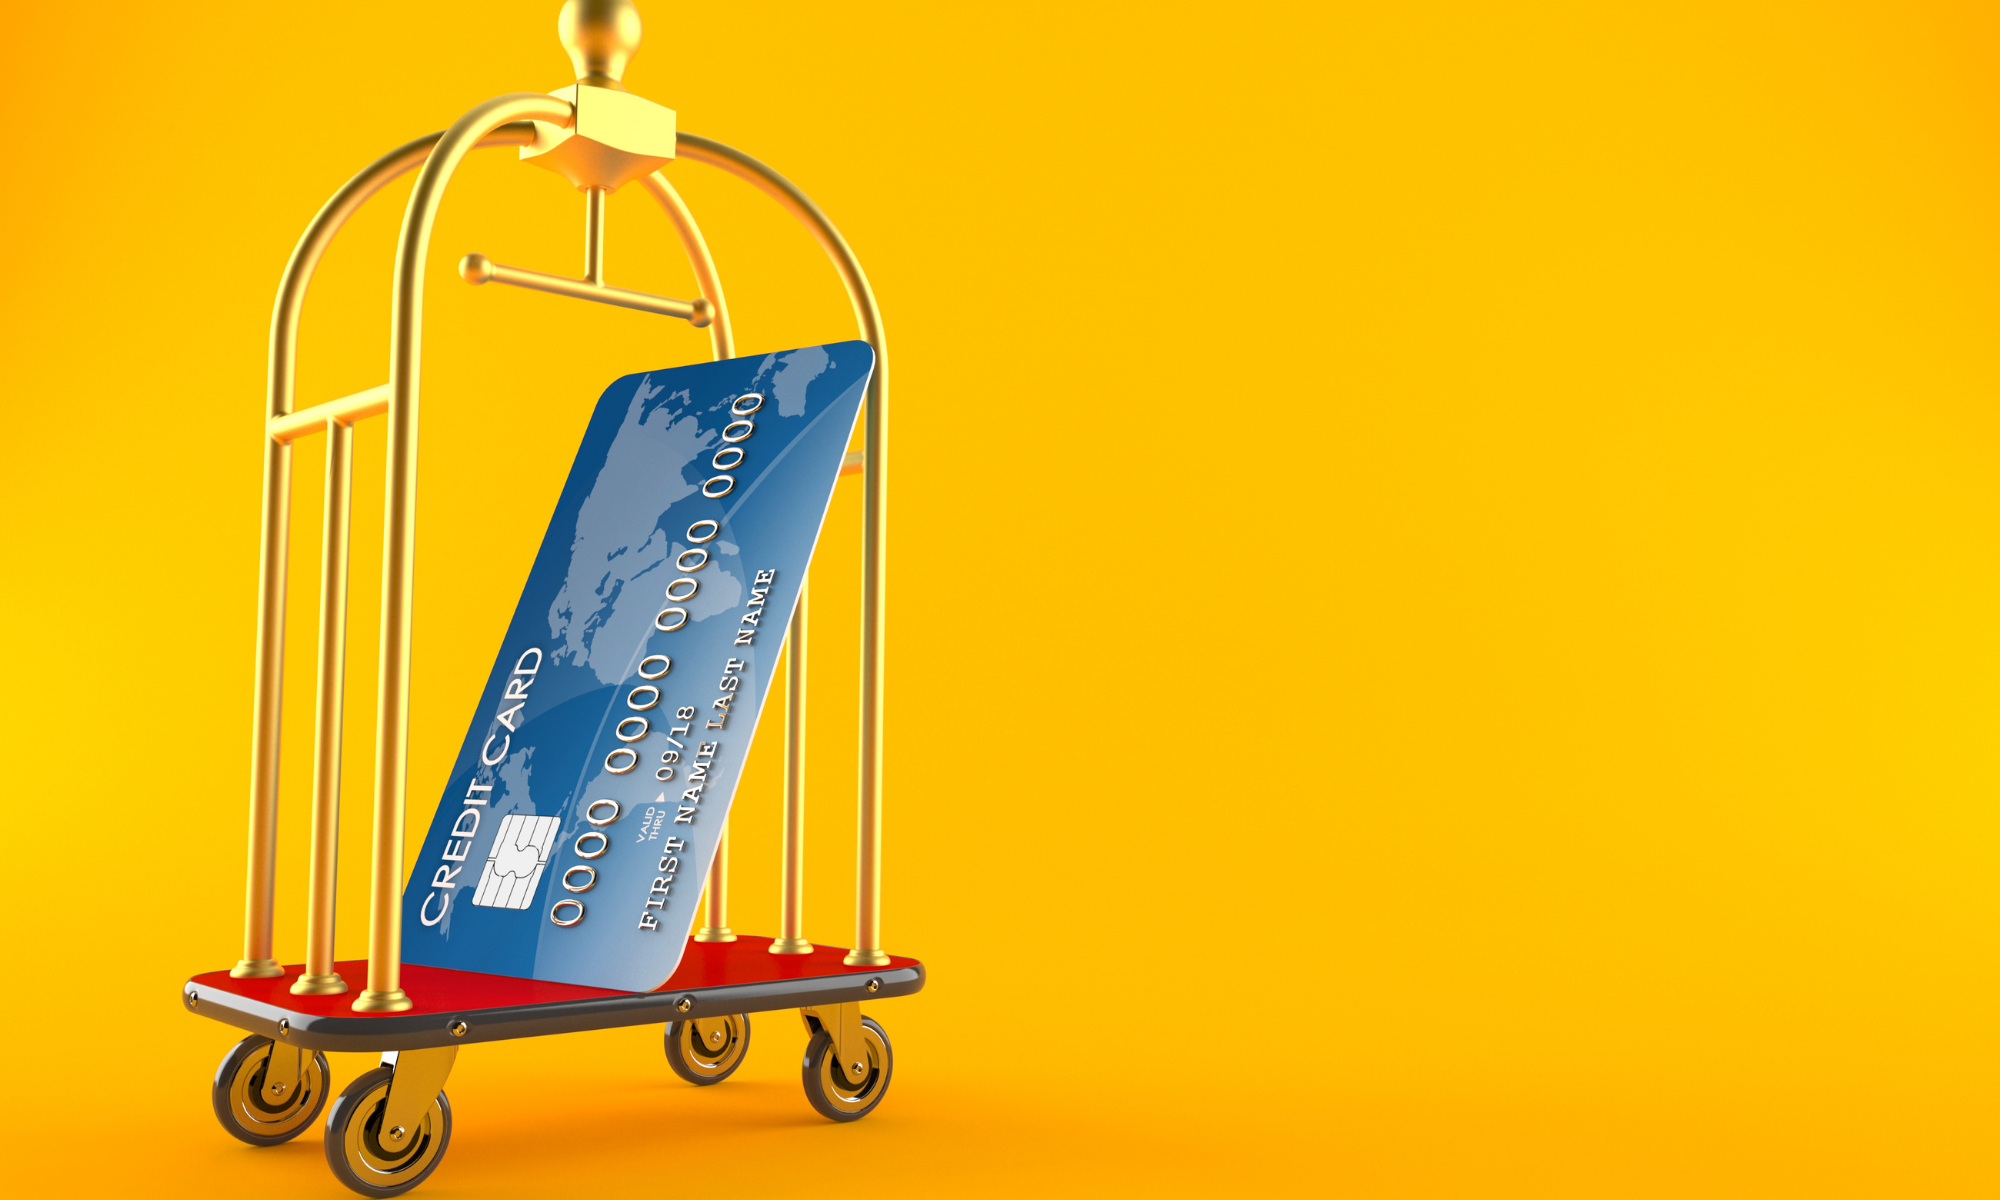 How to handle credit card information in your hotel safely